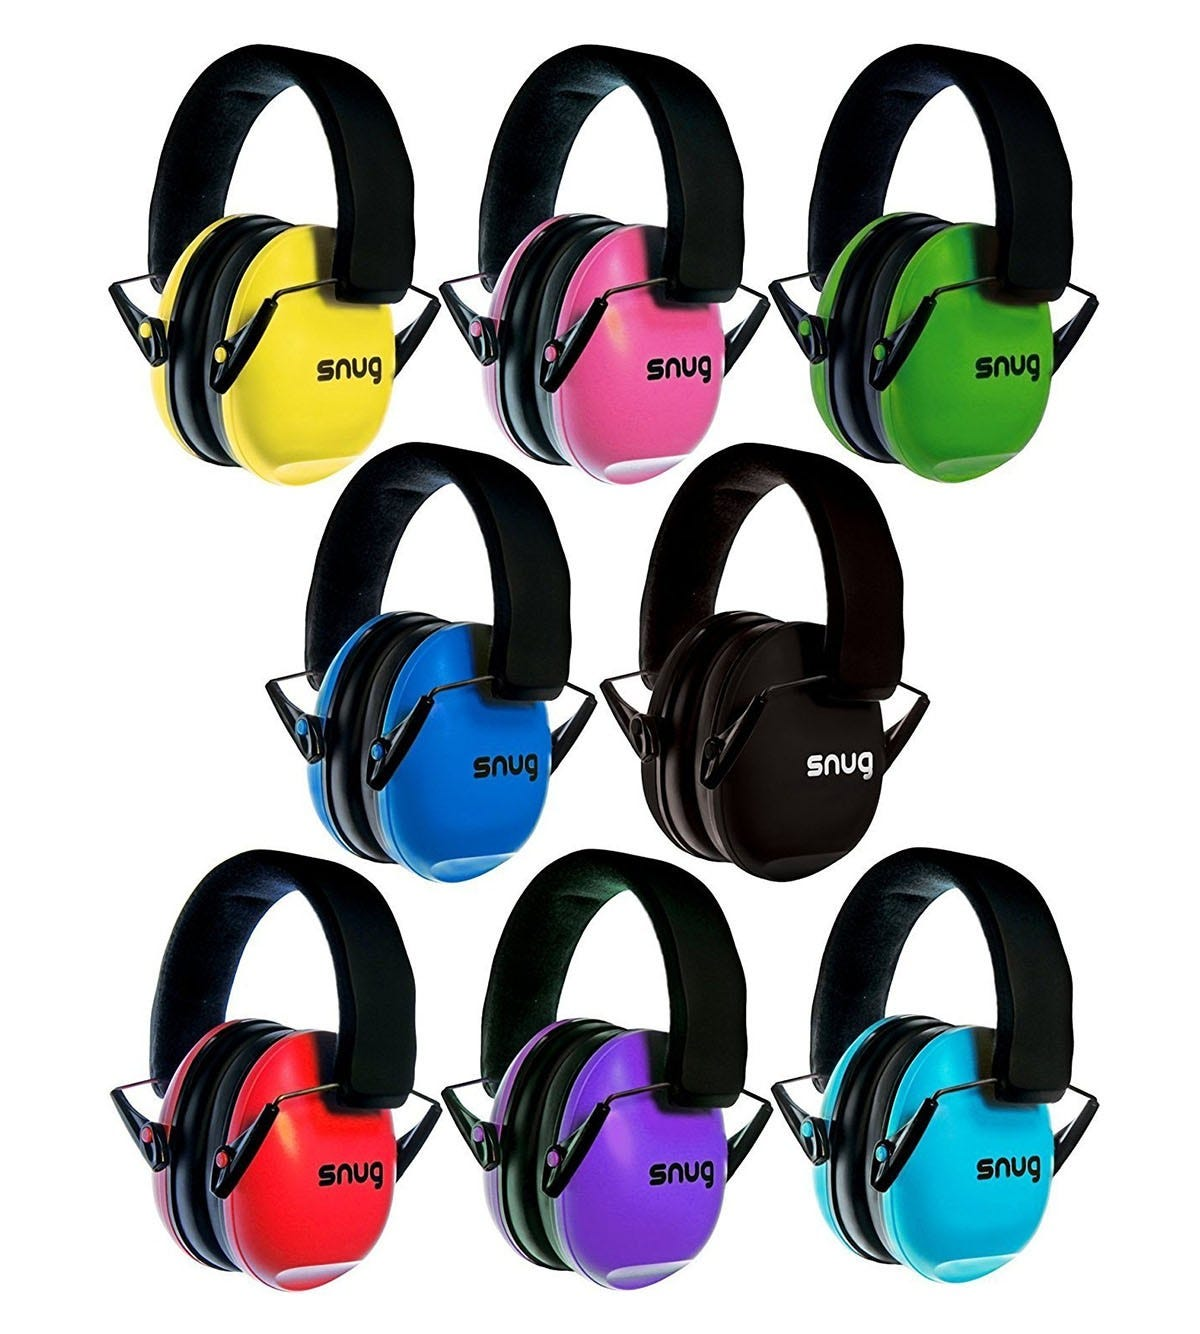 6906d76940a Snug Kids Earmuffs are a safe bet because they're comfortable and don't  require insertion in the ear canal (something many kids aren't very big  fans of).